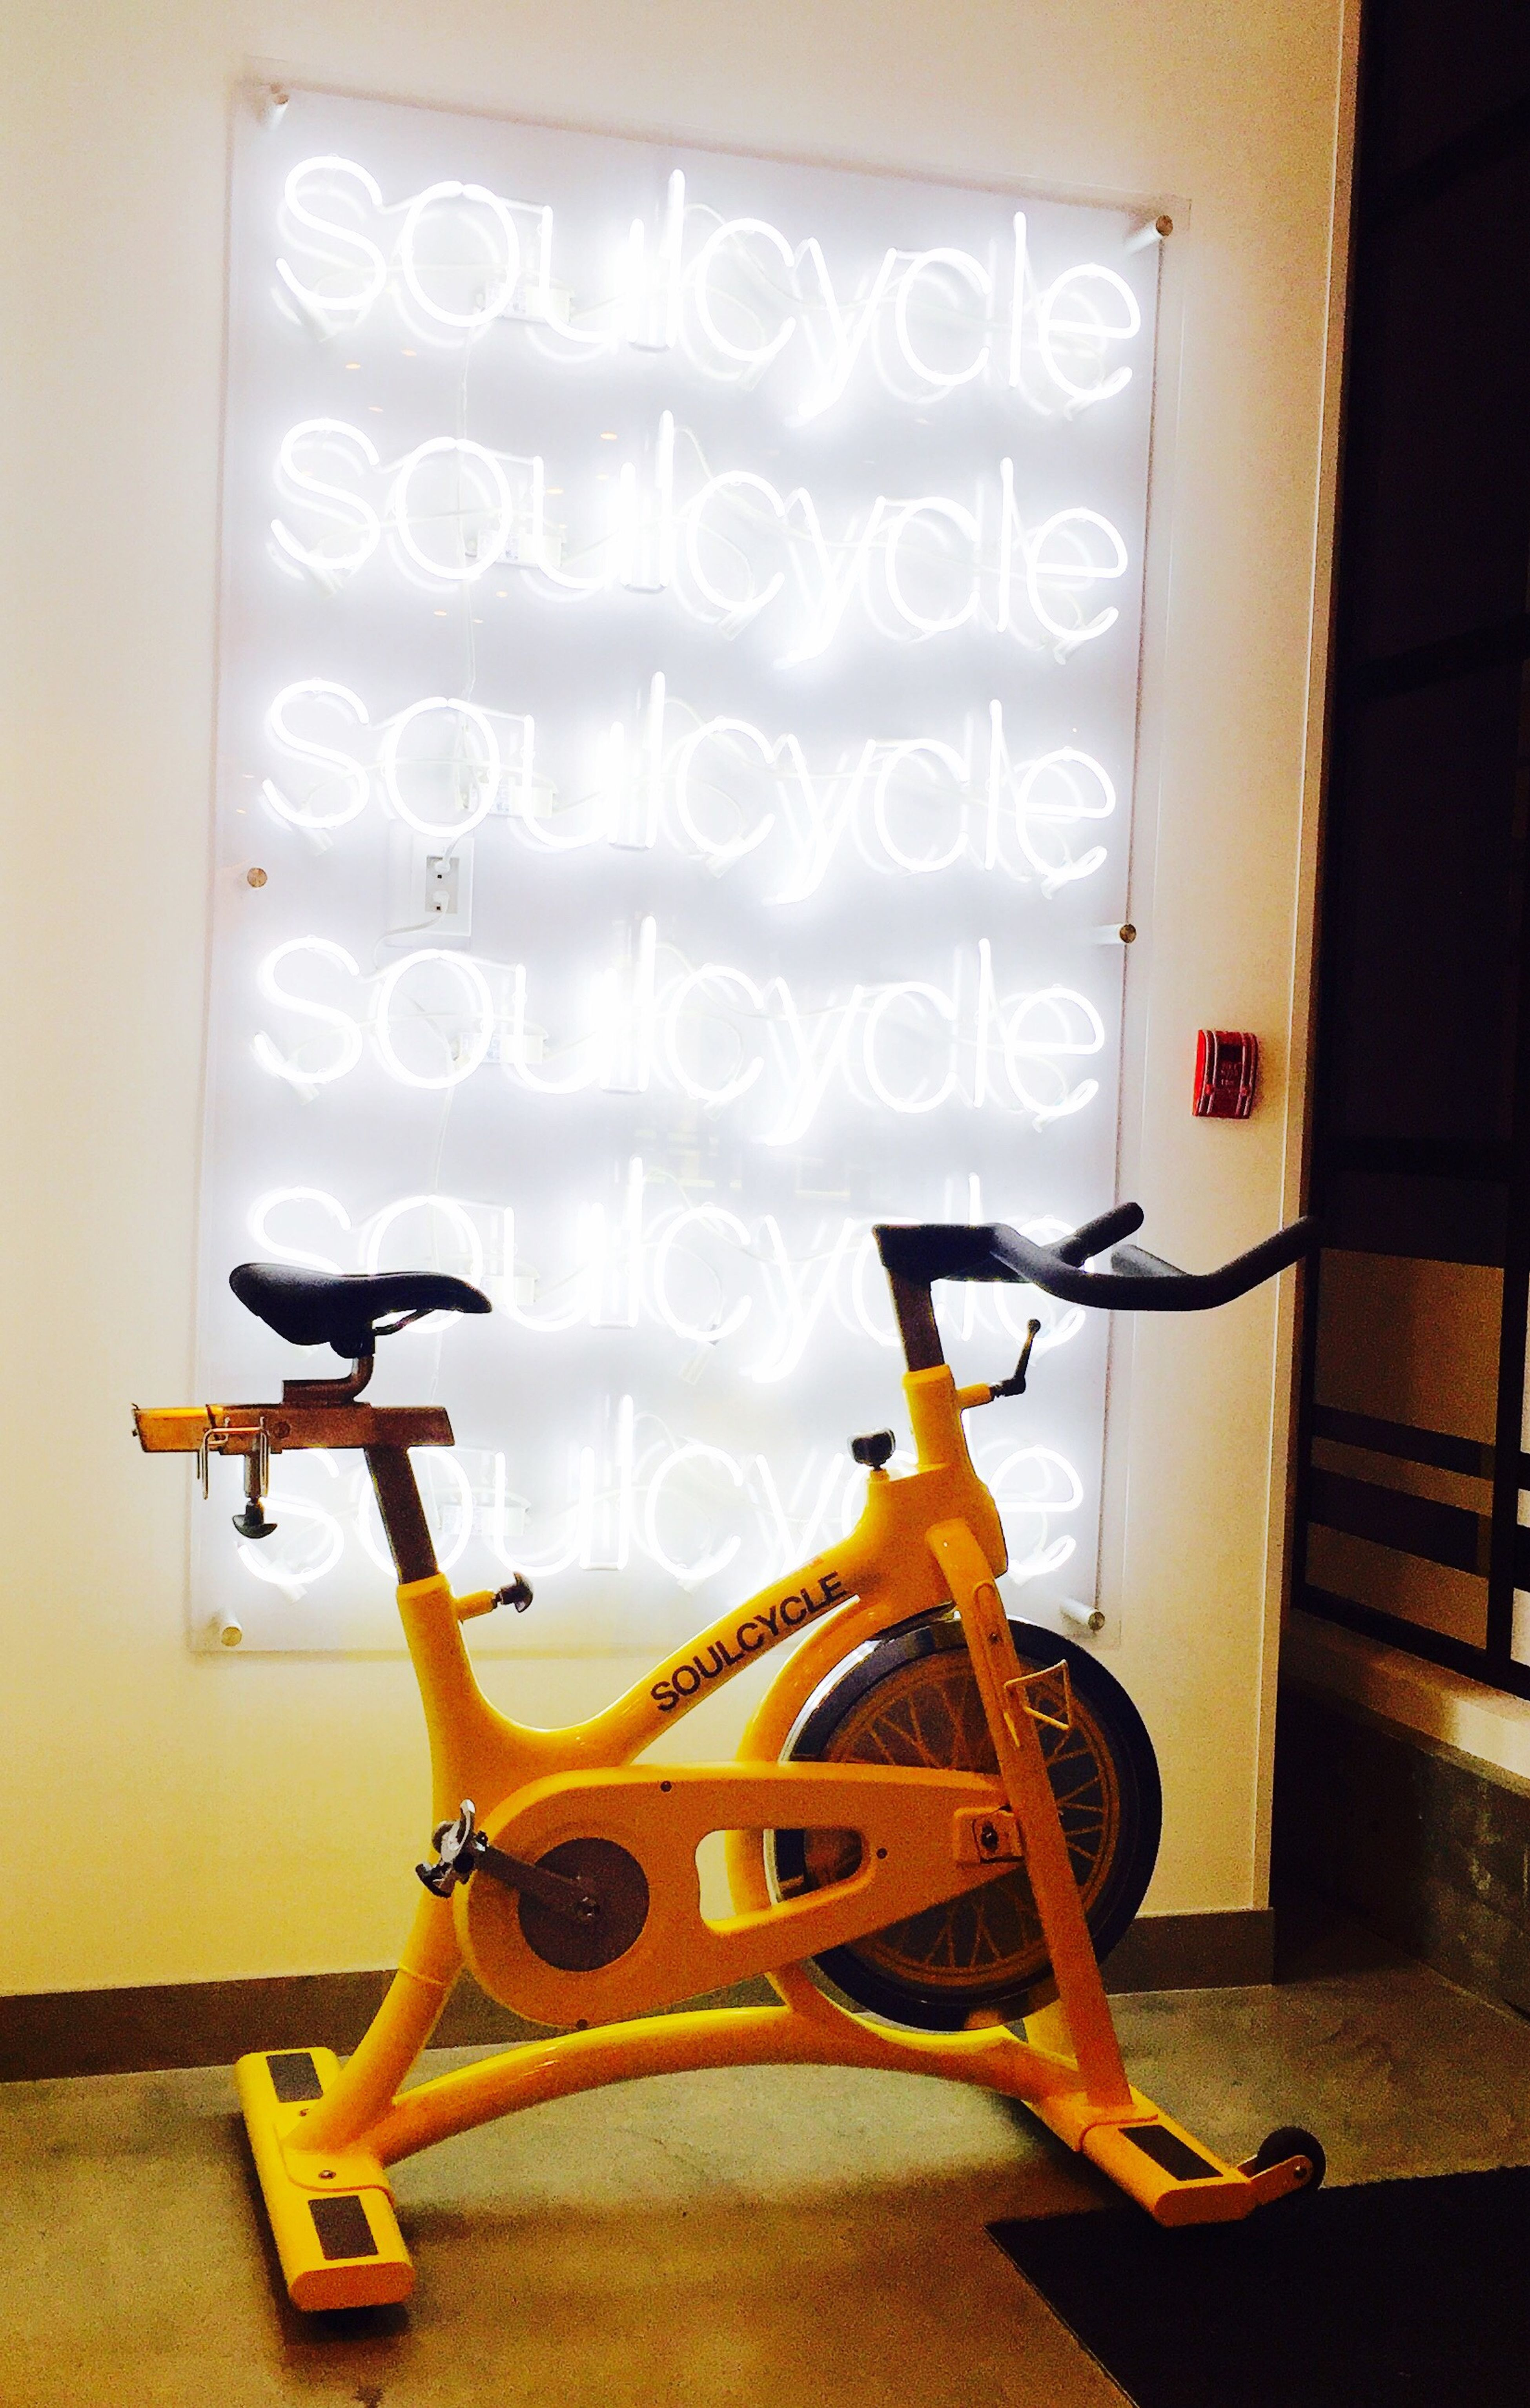 S P I N N I N G @ S O U L C Y C L E so uplifting! Amazing Ivegotsoul Motivational Fitness Cycle Spinning